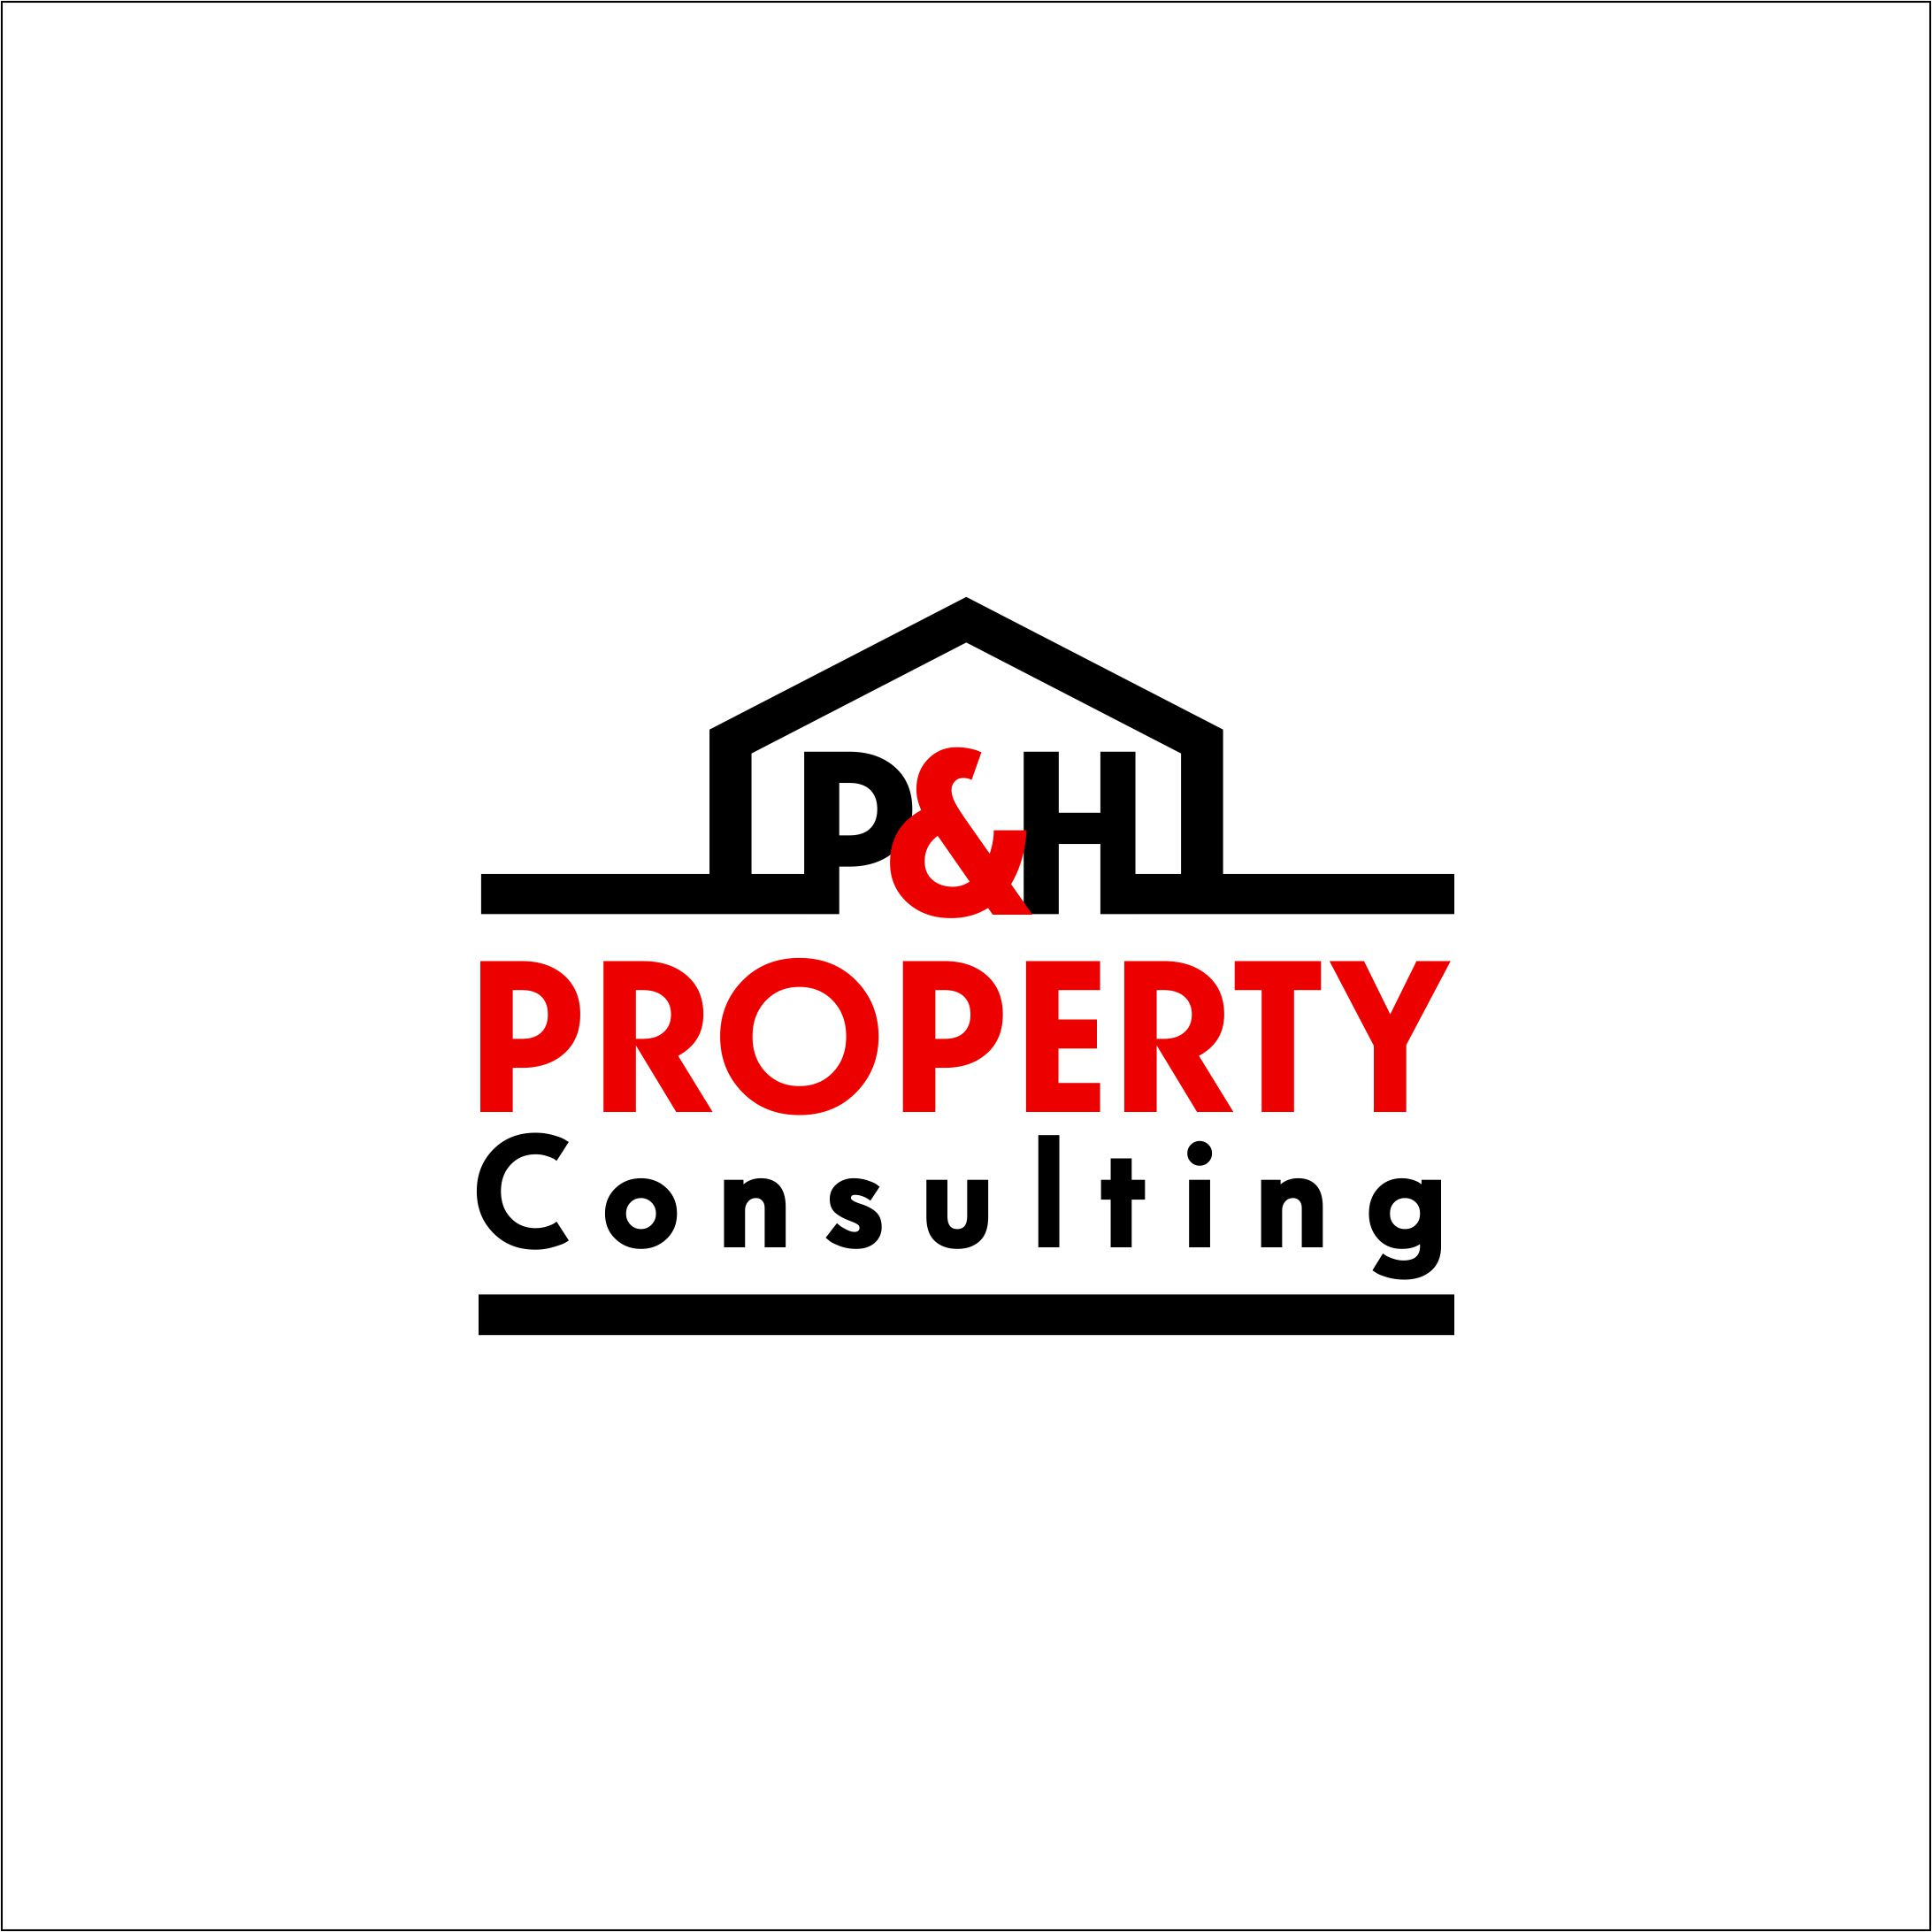 P&H Property Consulting